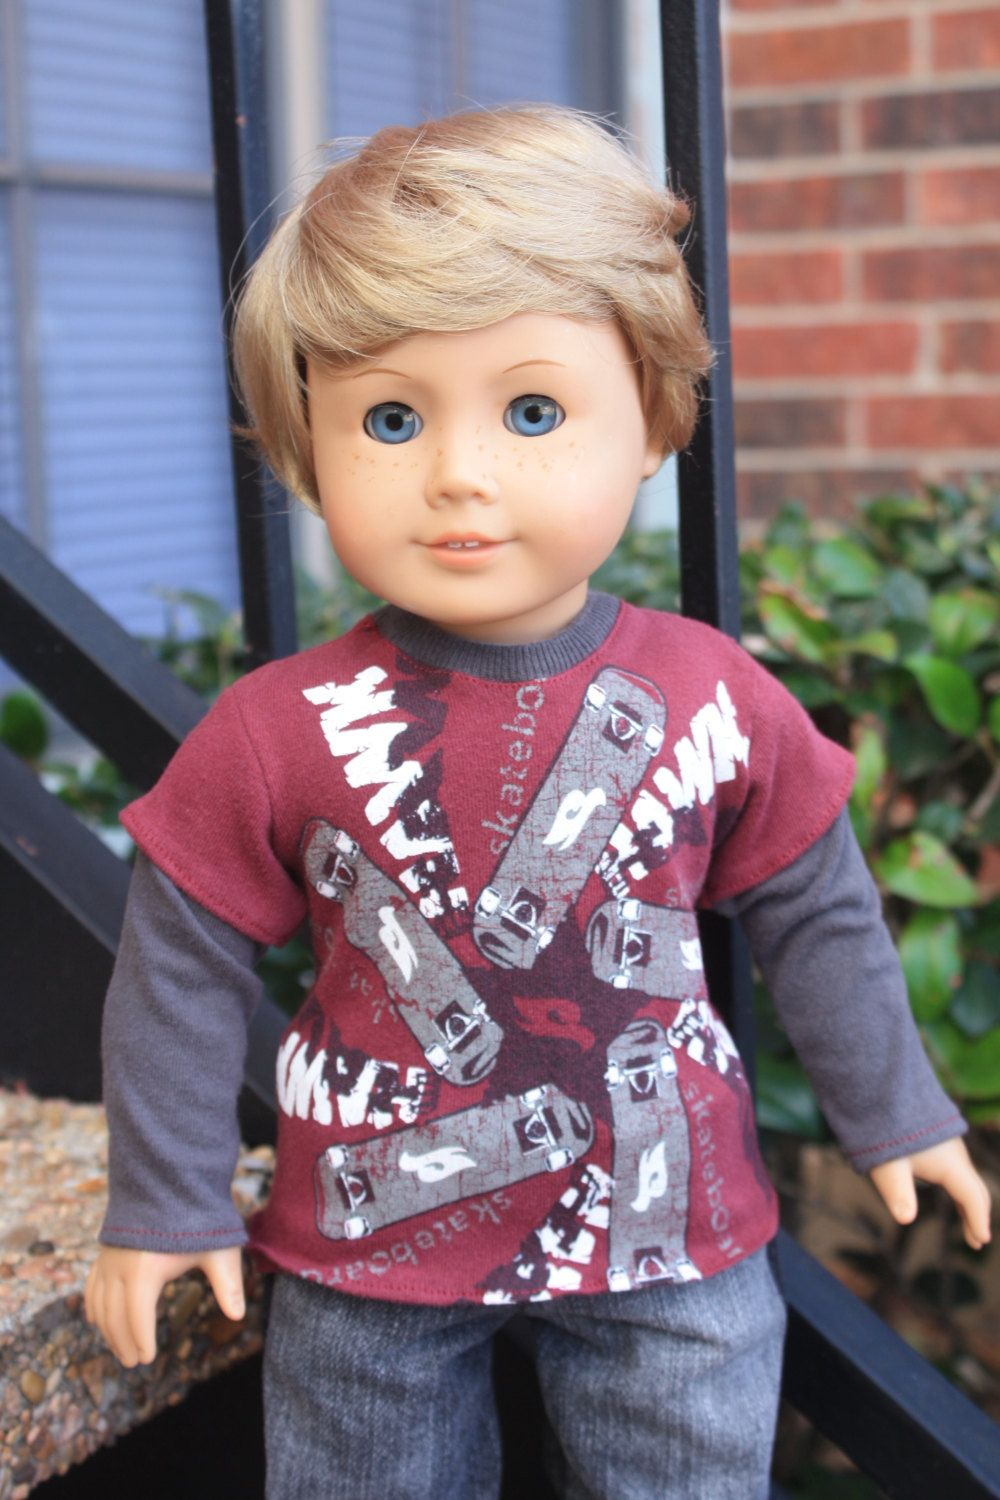 6180db5e77572 Maroon Tony Hawk Skateboarding Longsleeved Tee - For American Girl ...